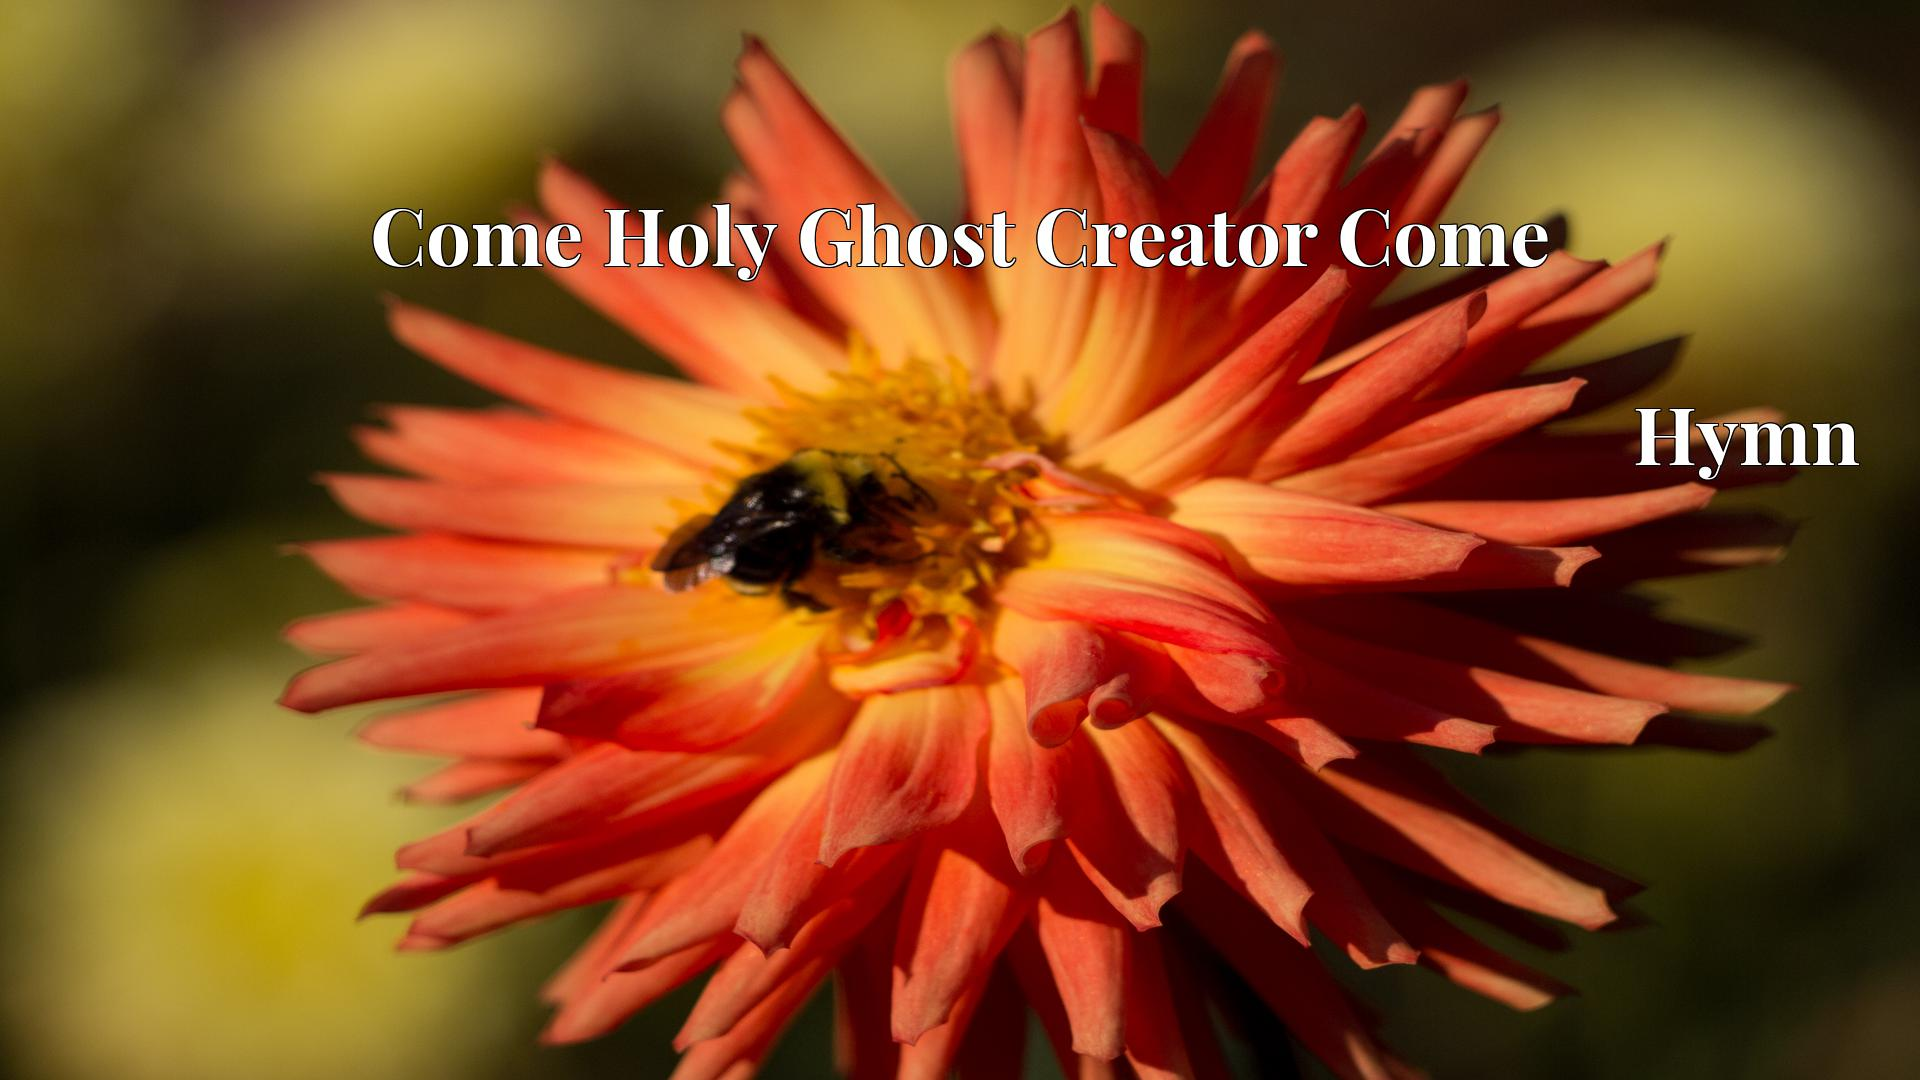 Come Holy Ghost Creator Come - Hymn